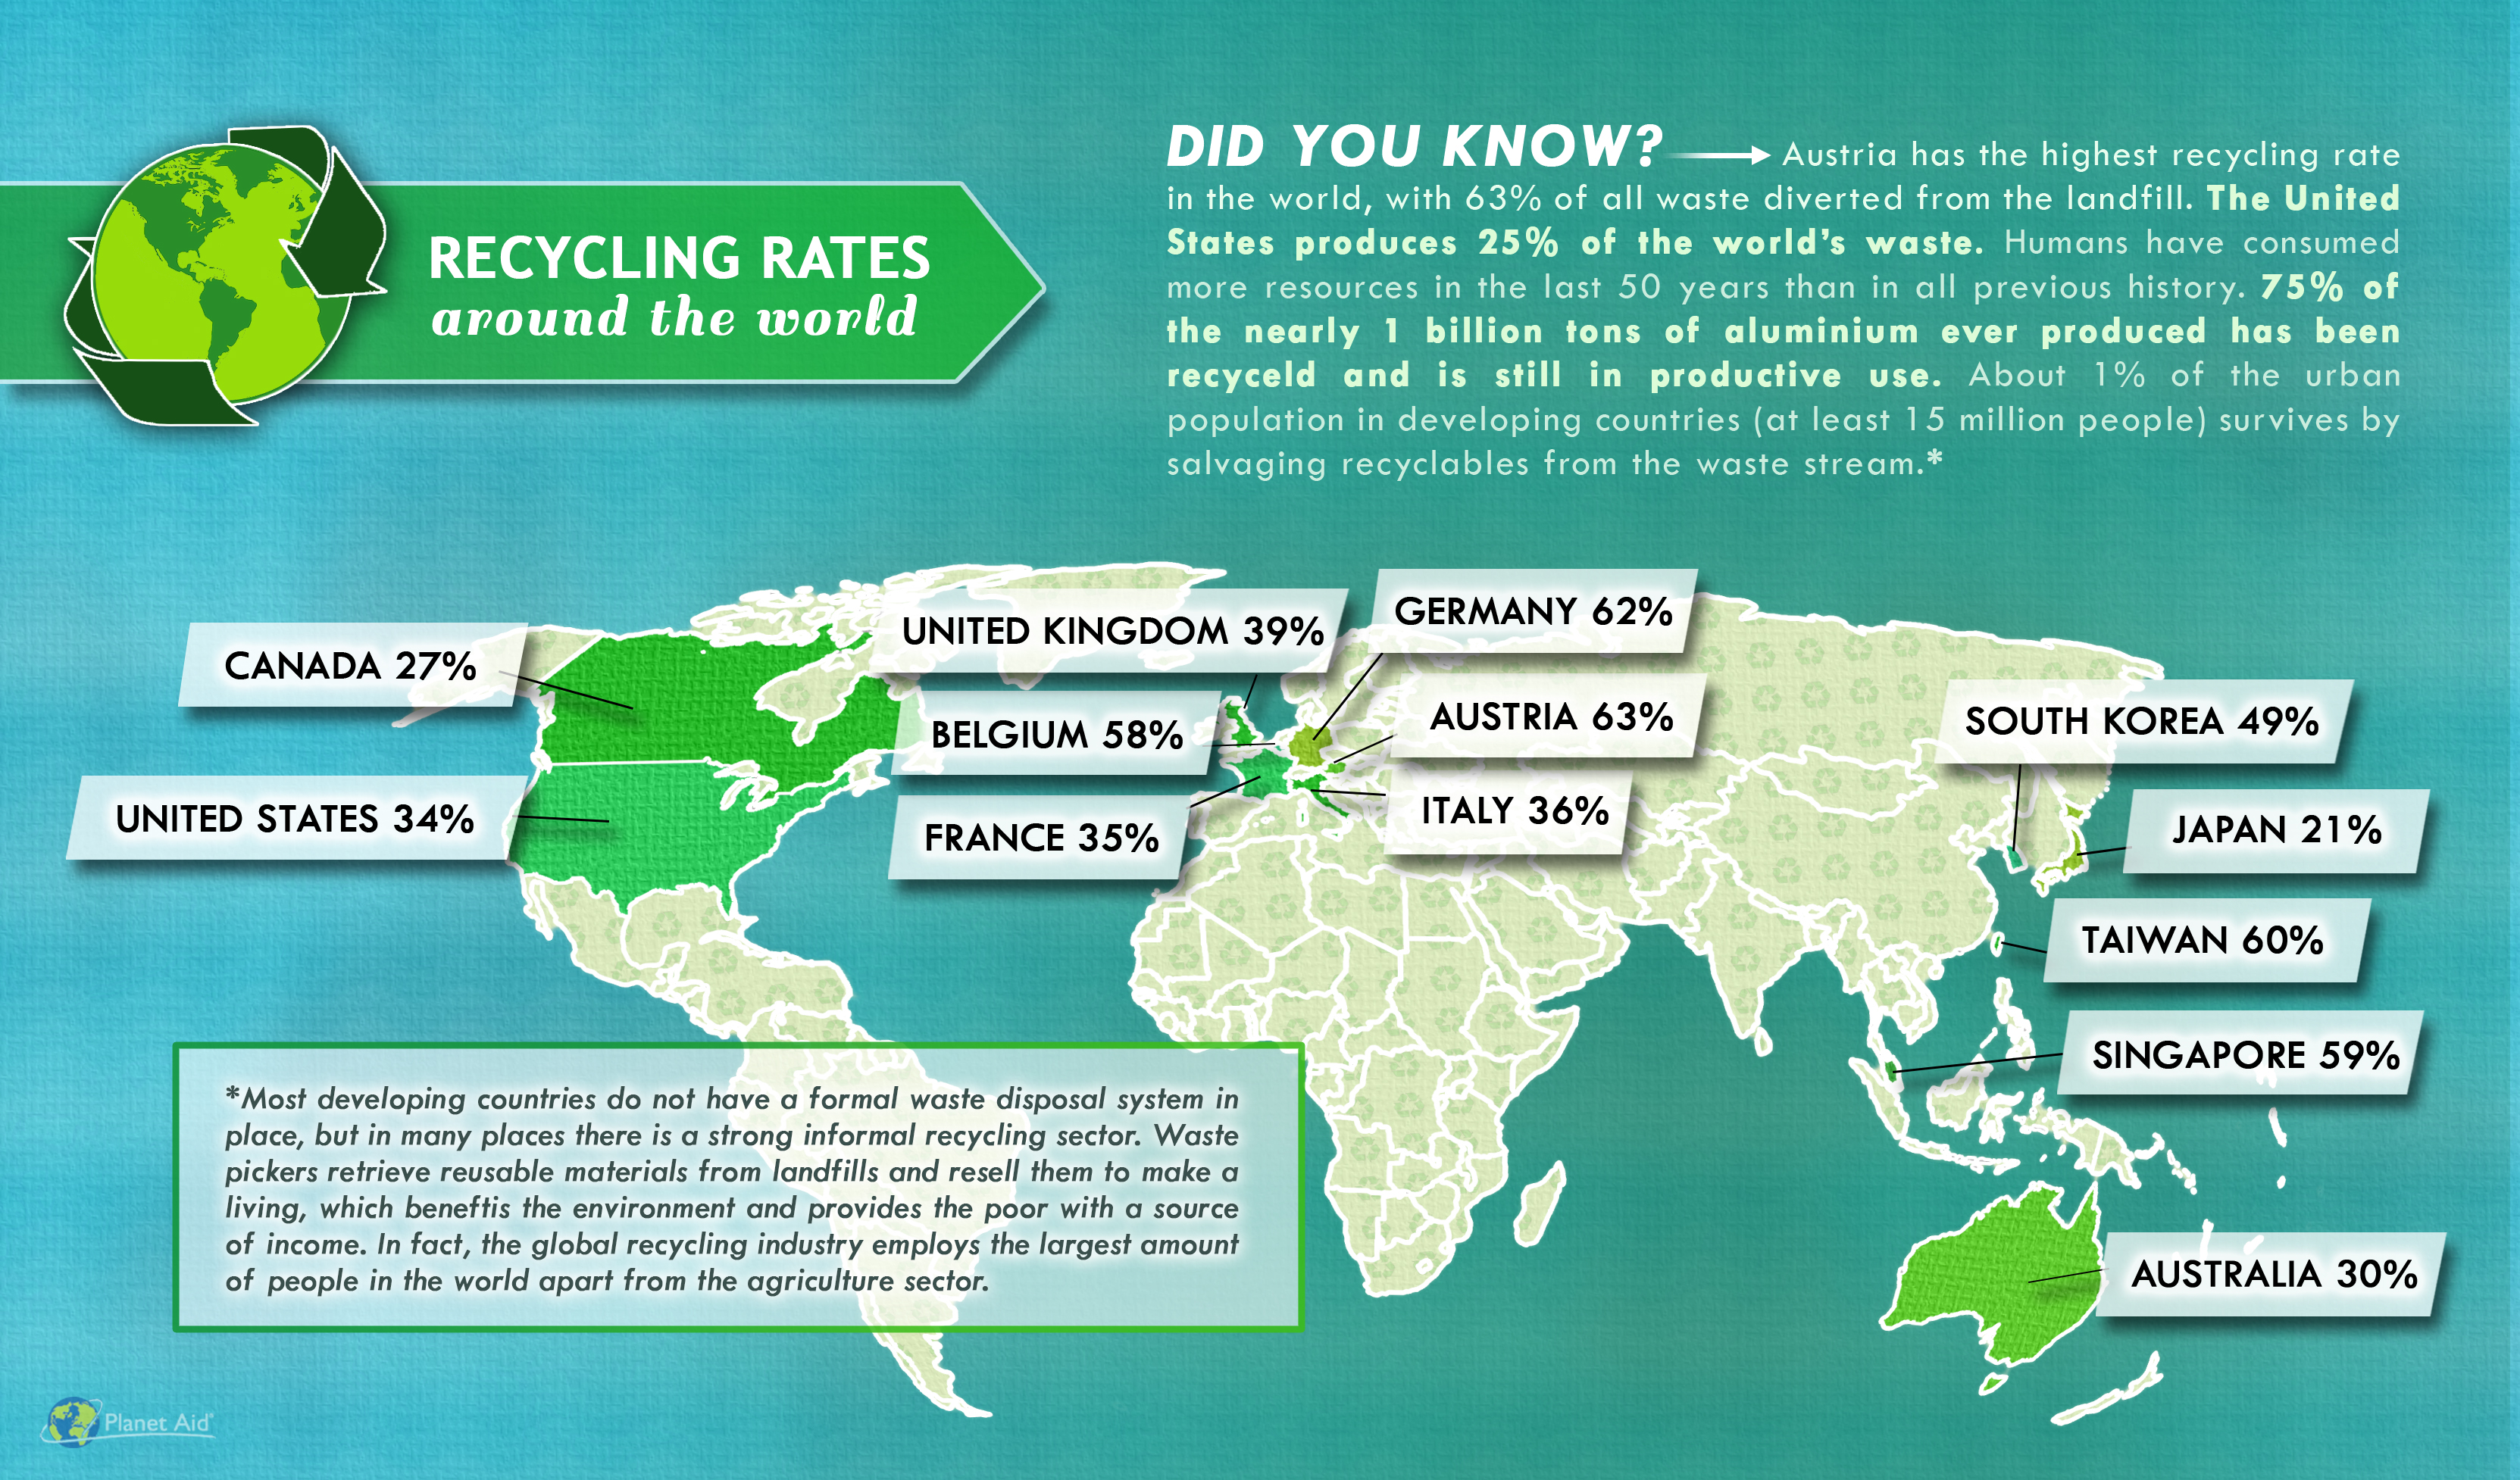 Source: http://www.planetaid.org/latest-news/epa-reports-waste-volume-up-recycling-is-flat